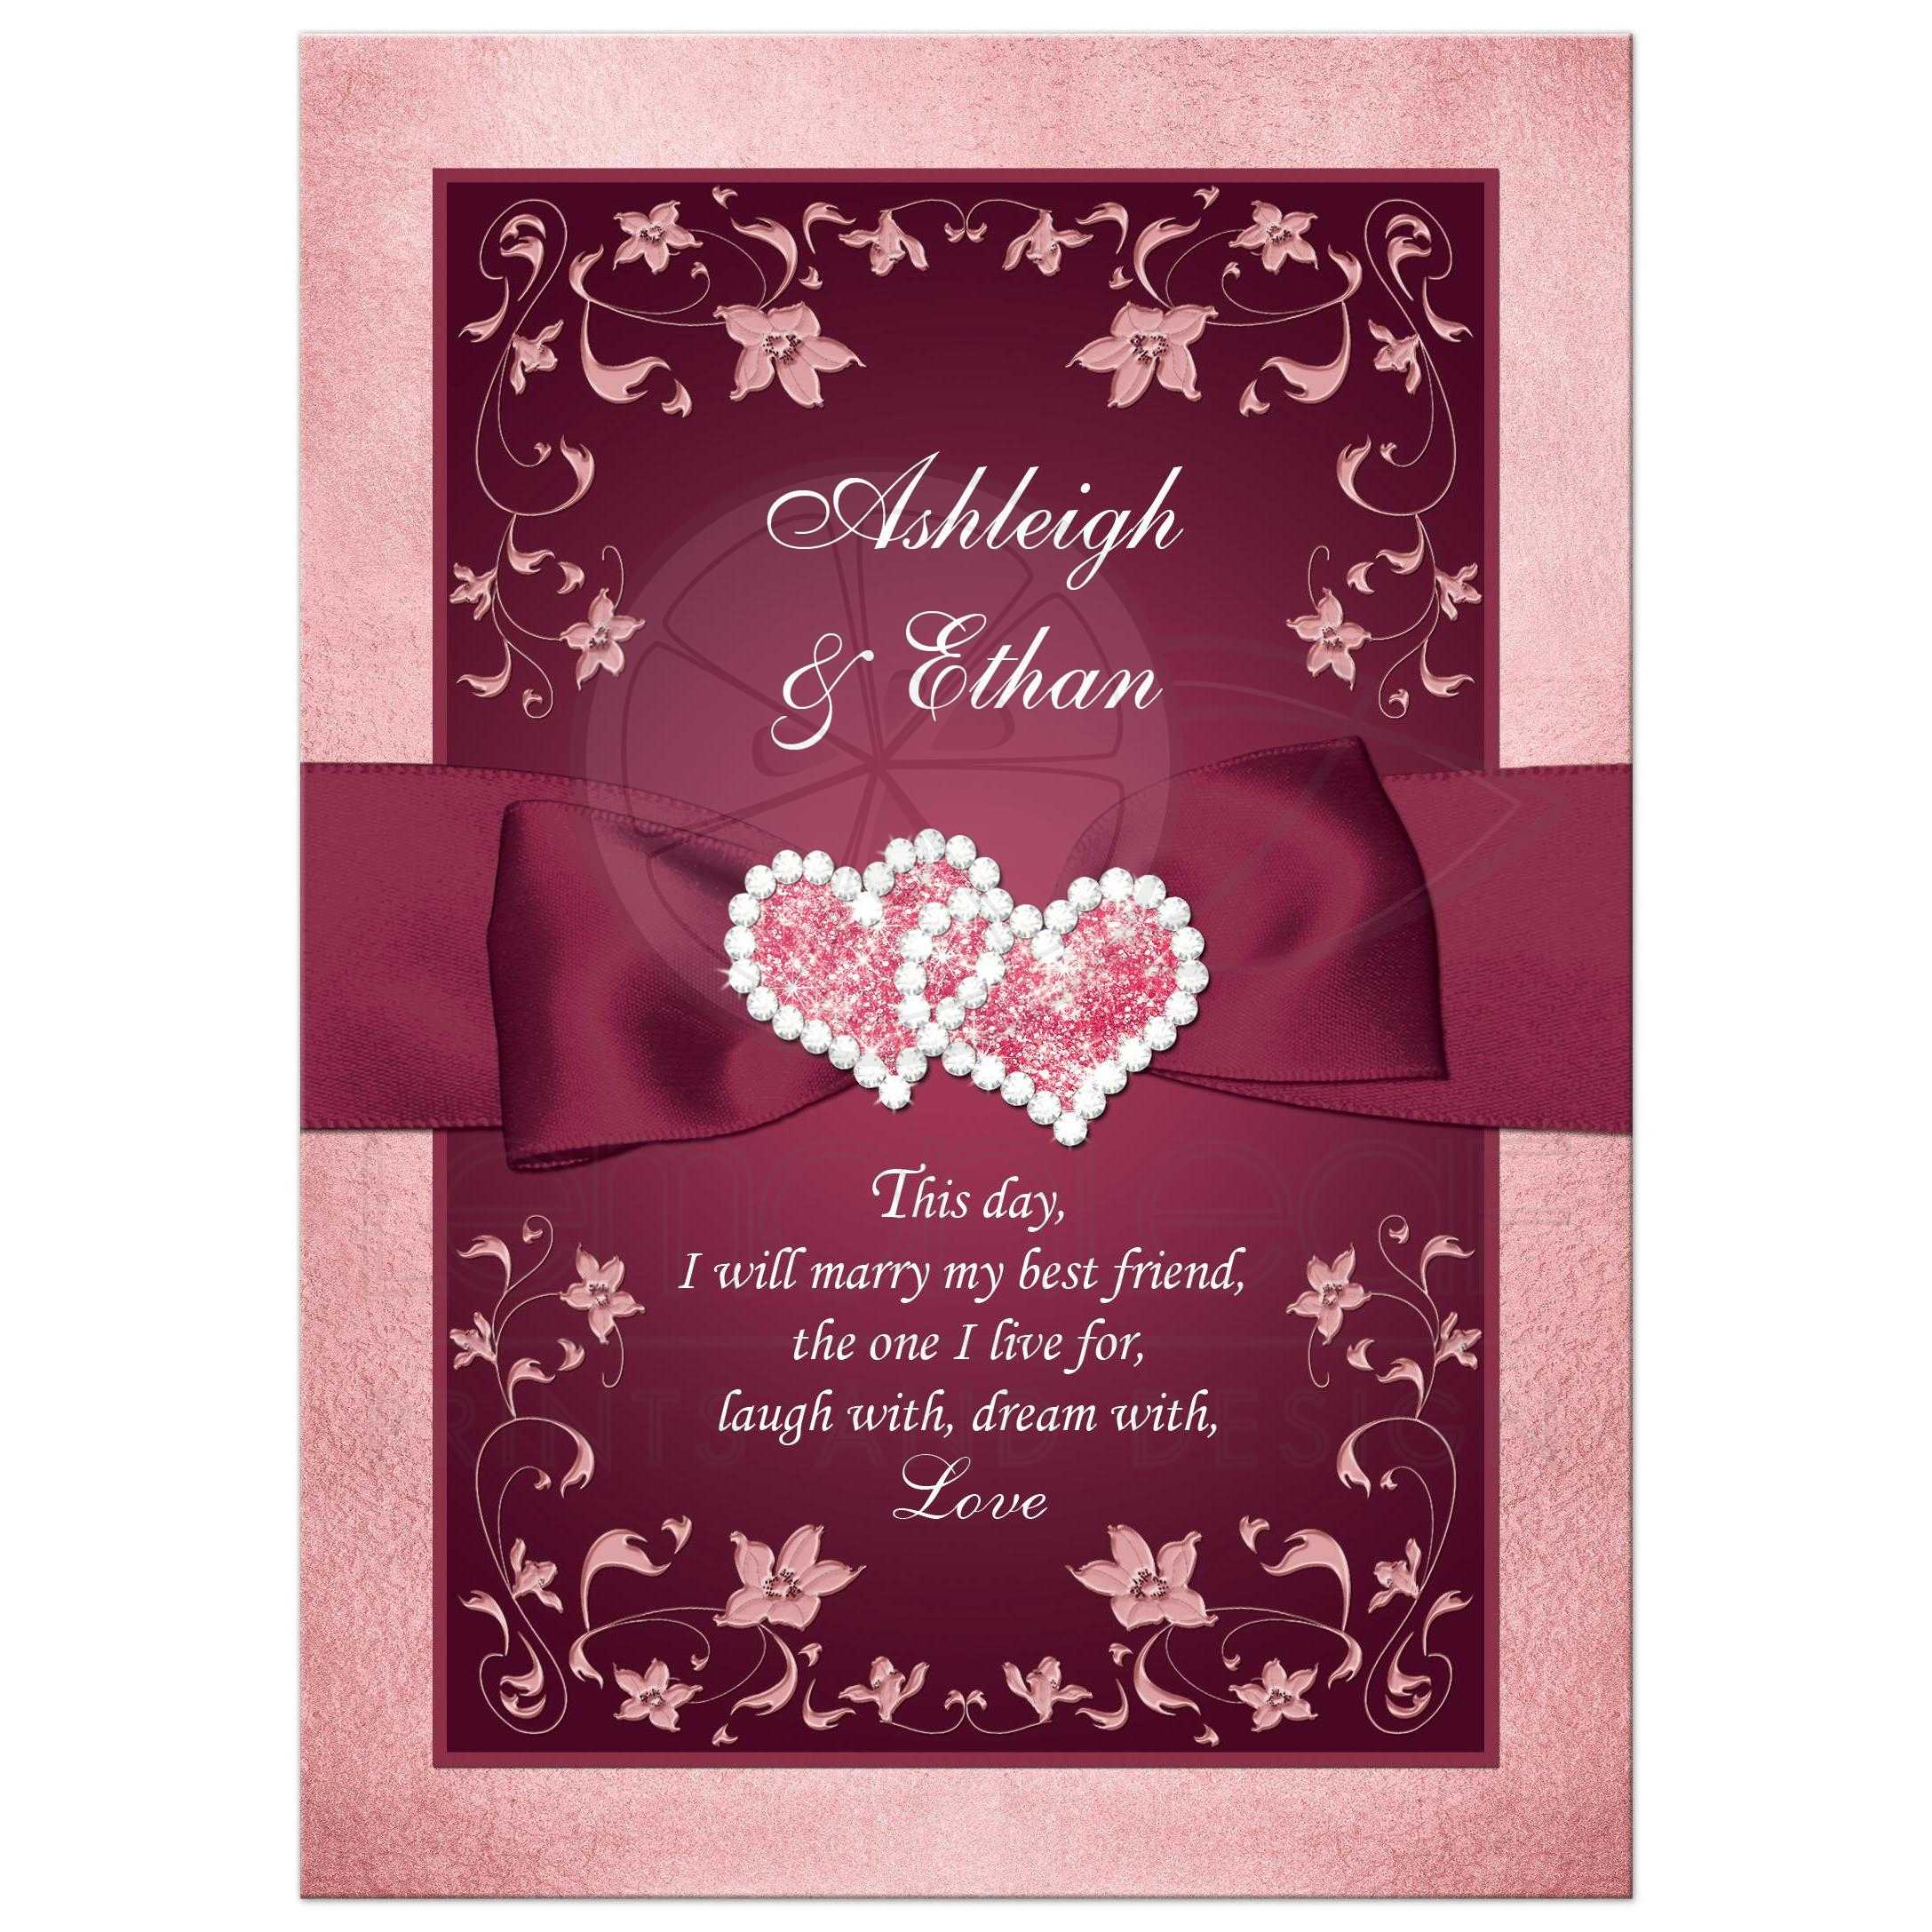 Burgundy Wine, Blush Pink, Rose Gold And White Floral Wedding Invitation  With Burgundy ...